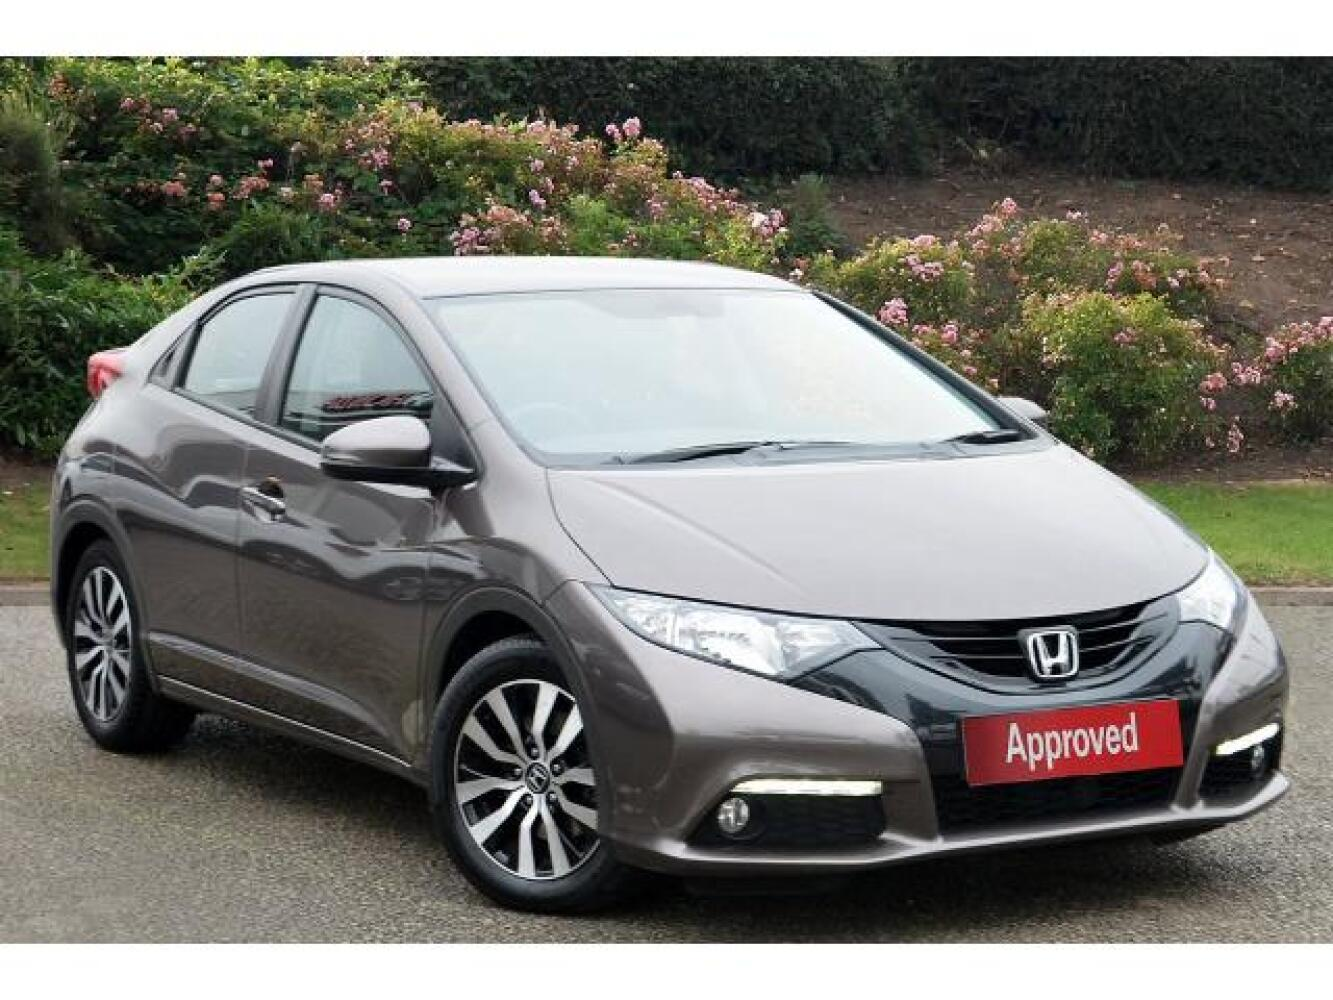 used honda civic 1 6 i dtec es t 5dr diesel hatchback for sale vertu honda. Black Bedroom Furniture Sets. Home Design Ideas